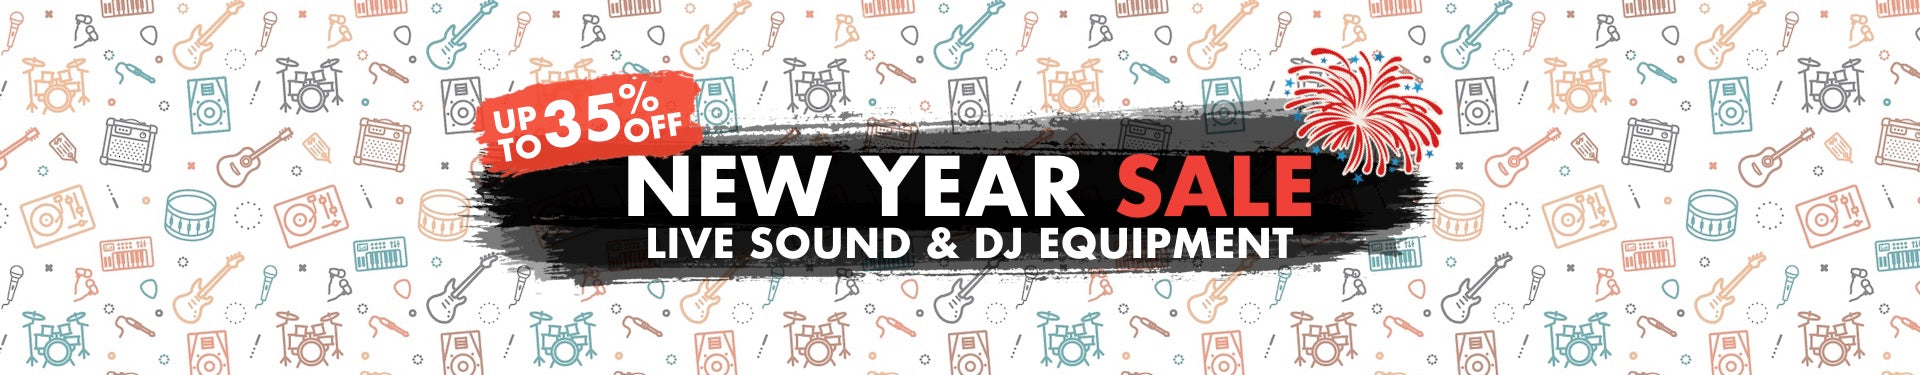 New Year Live Sound & DJ Equipment